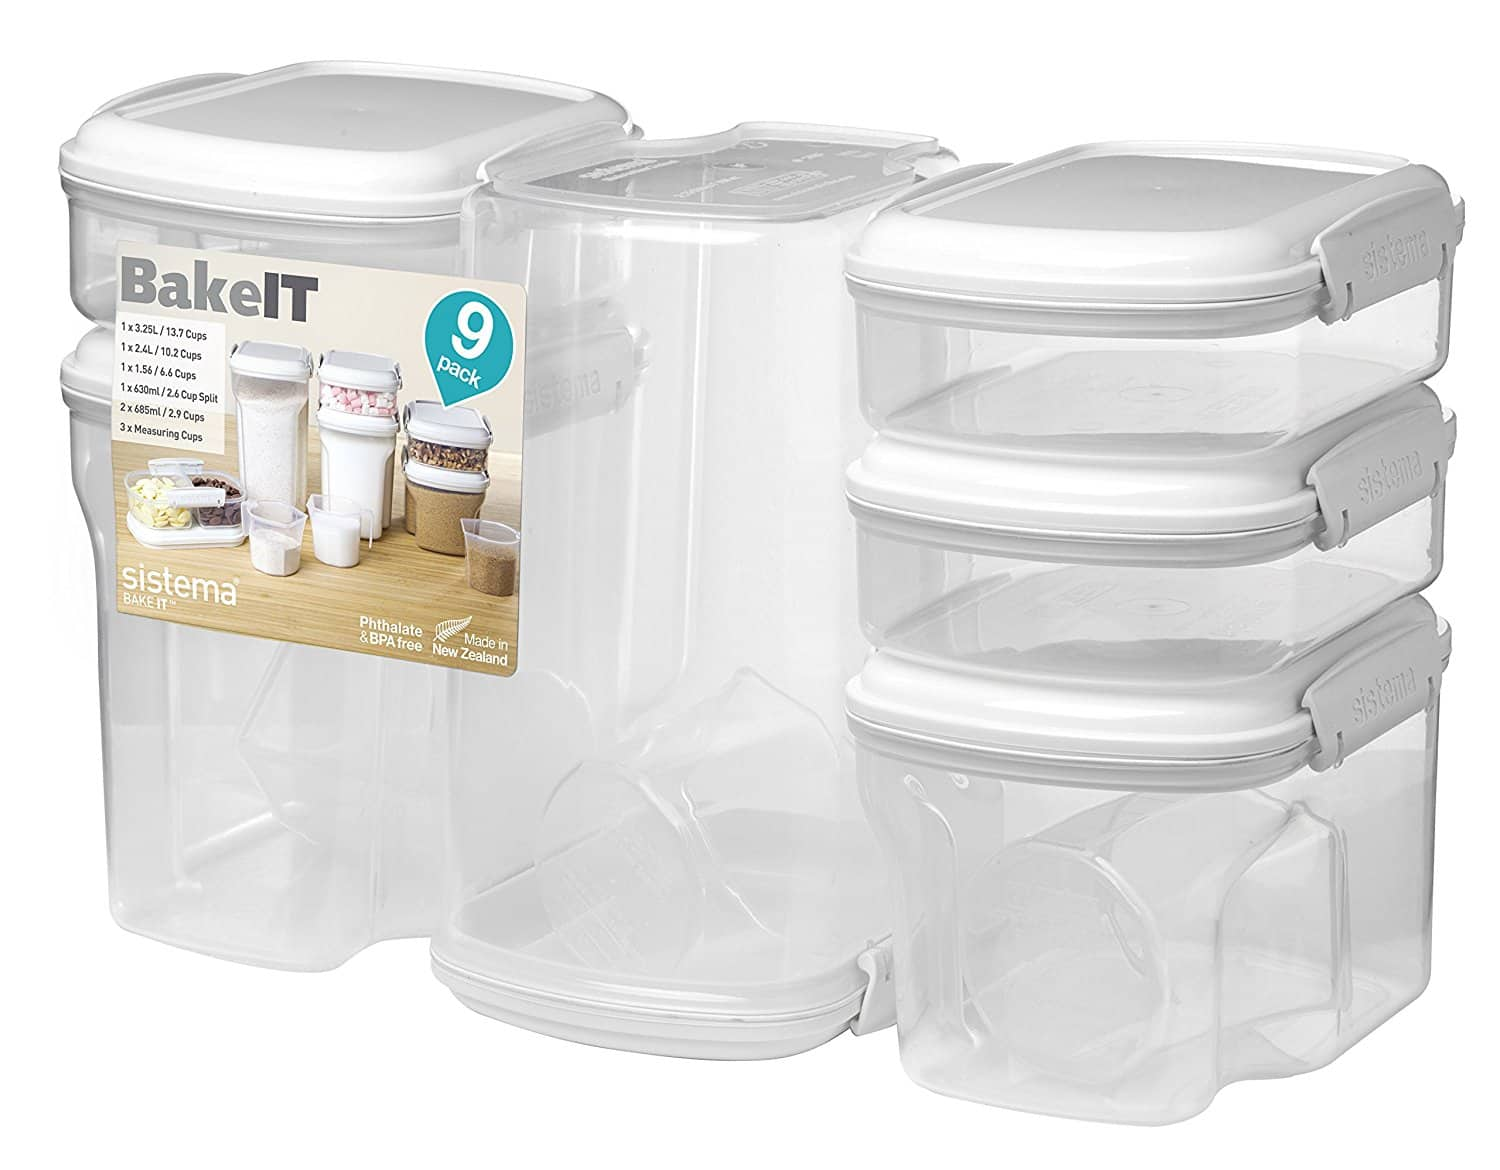 Sistema Bake It Food Storage for Baking Ingredients, Multi Piece Containers, Set of 9 $19.94 @amazon